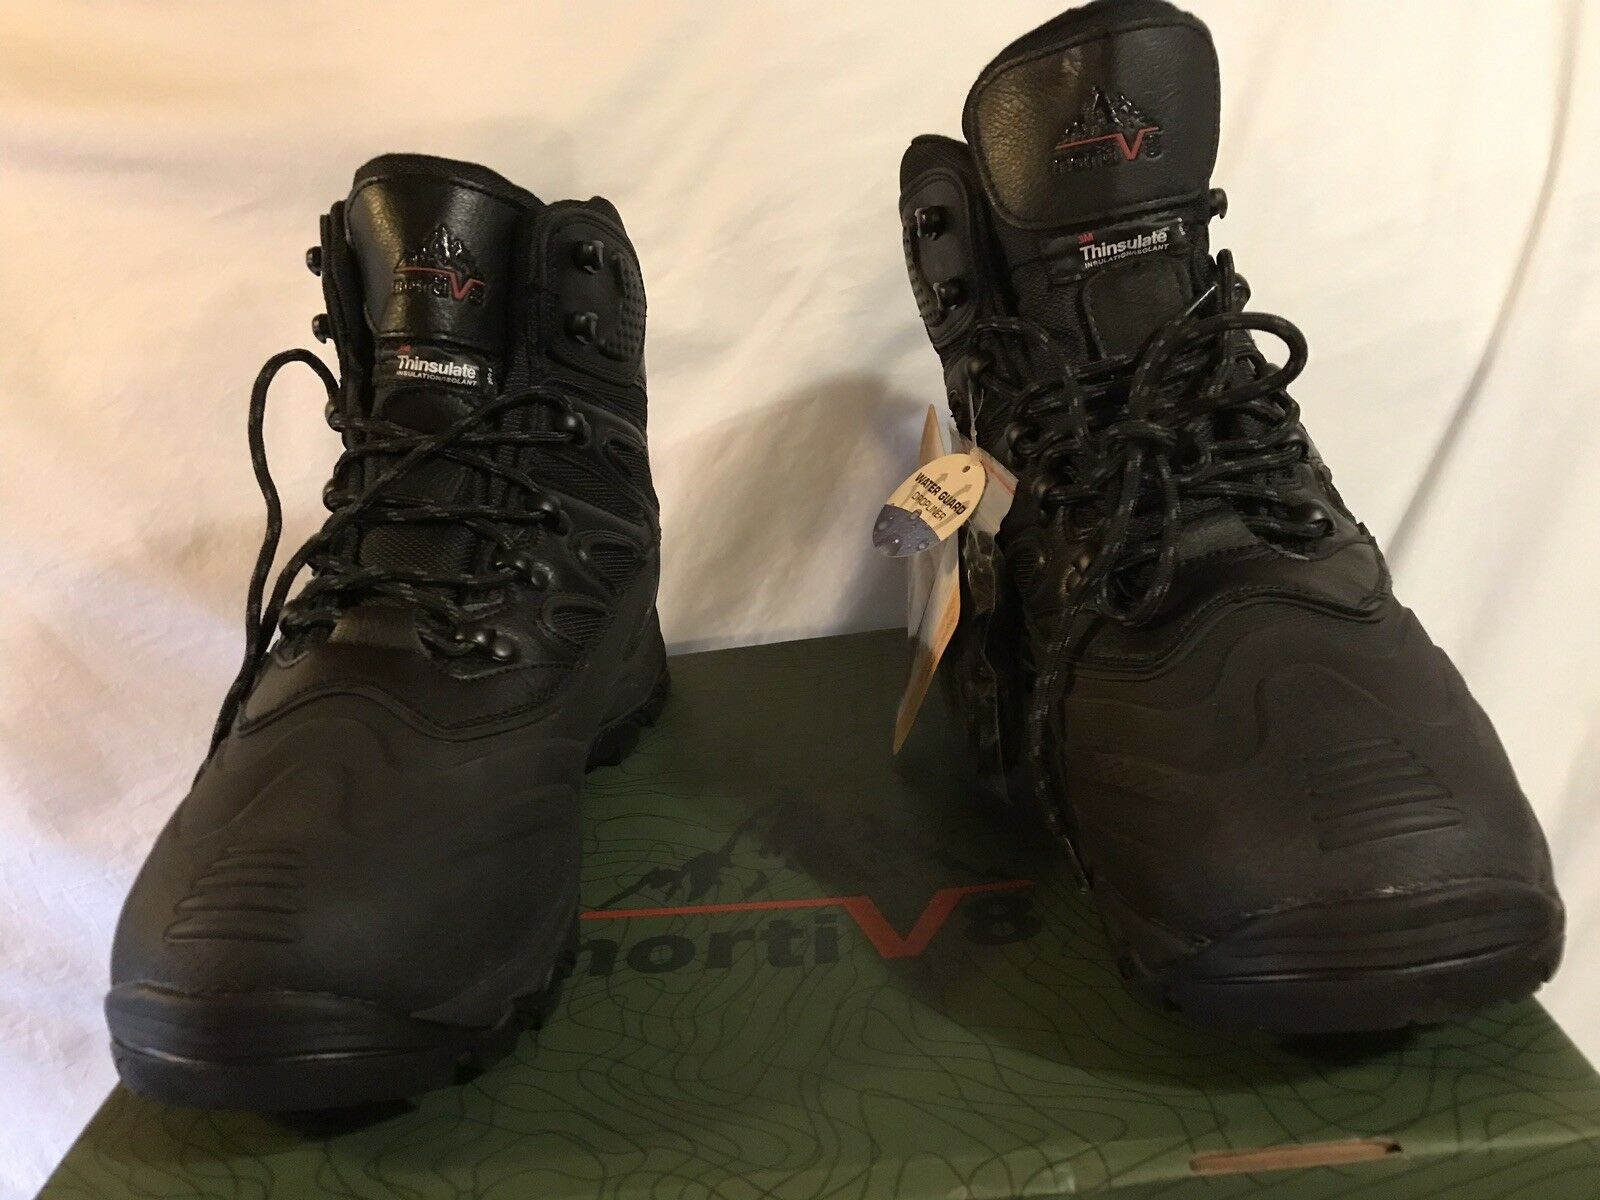 NIB Norti V 8 Men's Thinsulate Water Resistance Boots Size 13